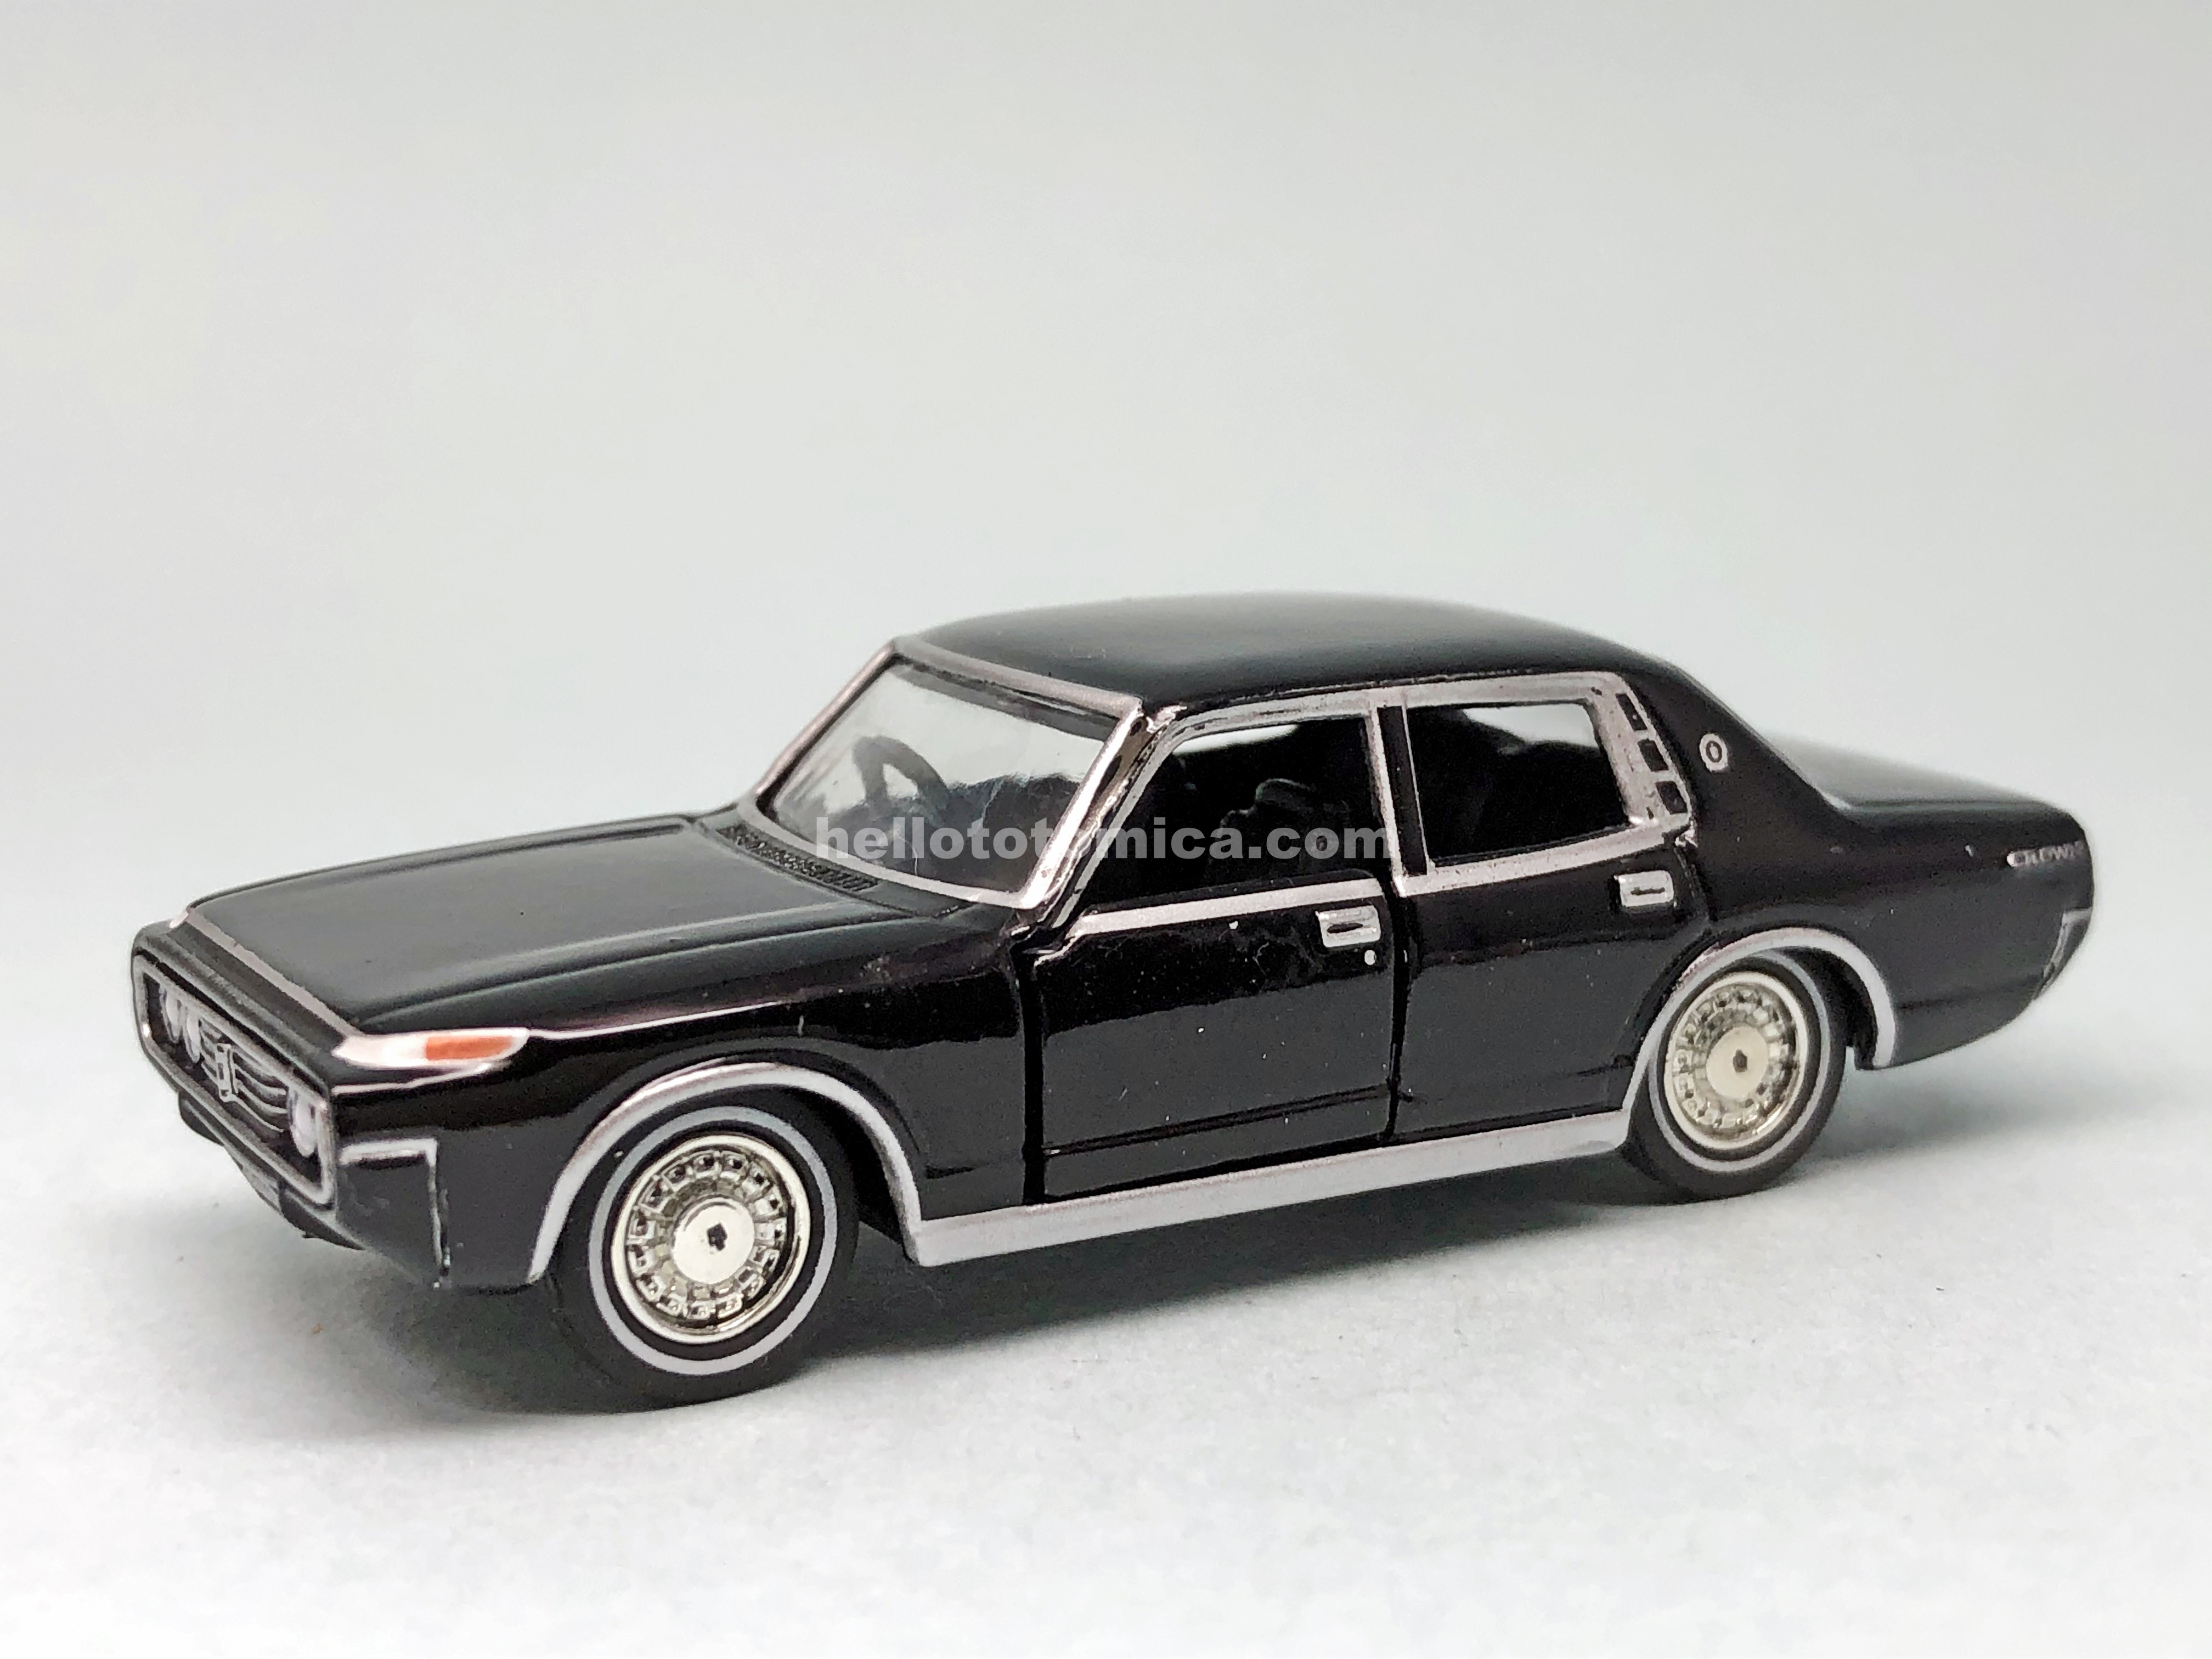 32-1 TOYOTA CROWN MS60